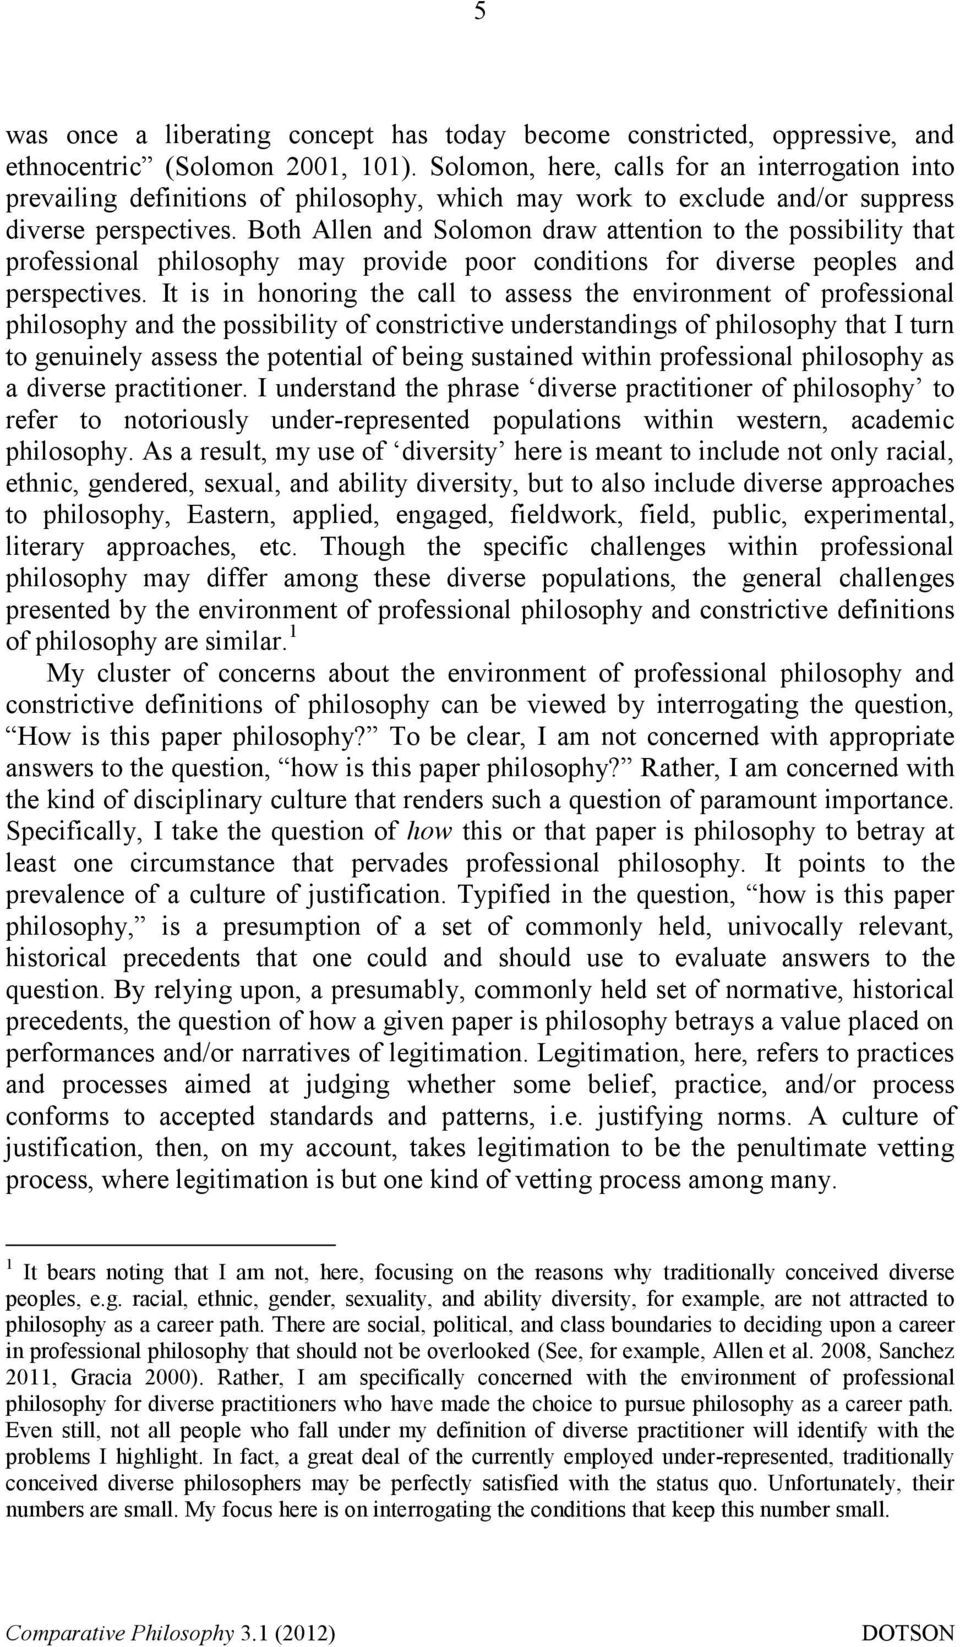 Both Allen and Solomon draw attention to the possibility that professional philosophy may provide poor conditions for diverse peoples and perspectives.